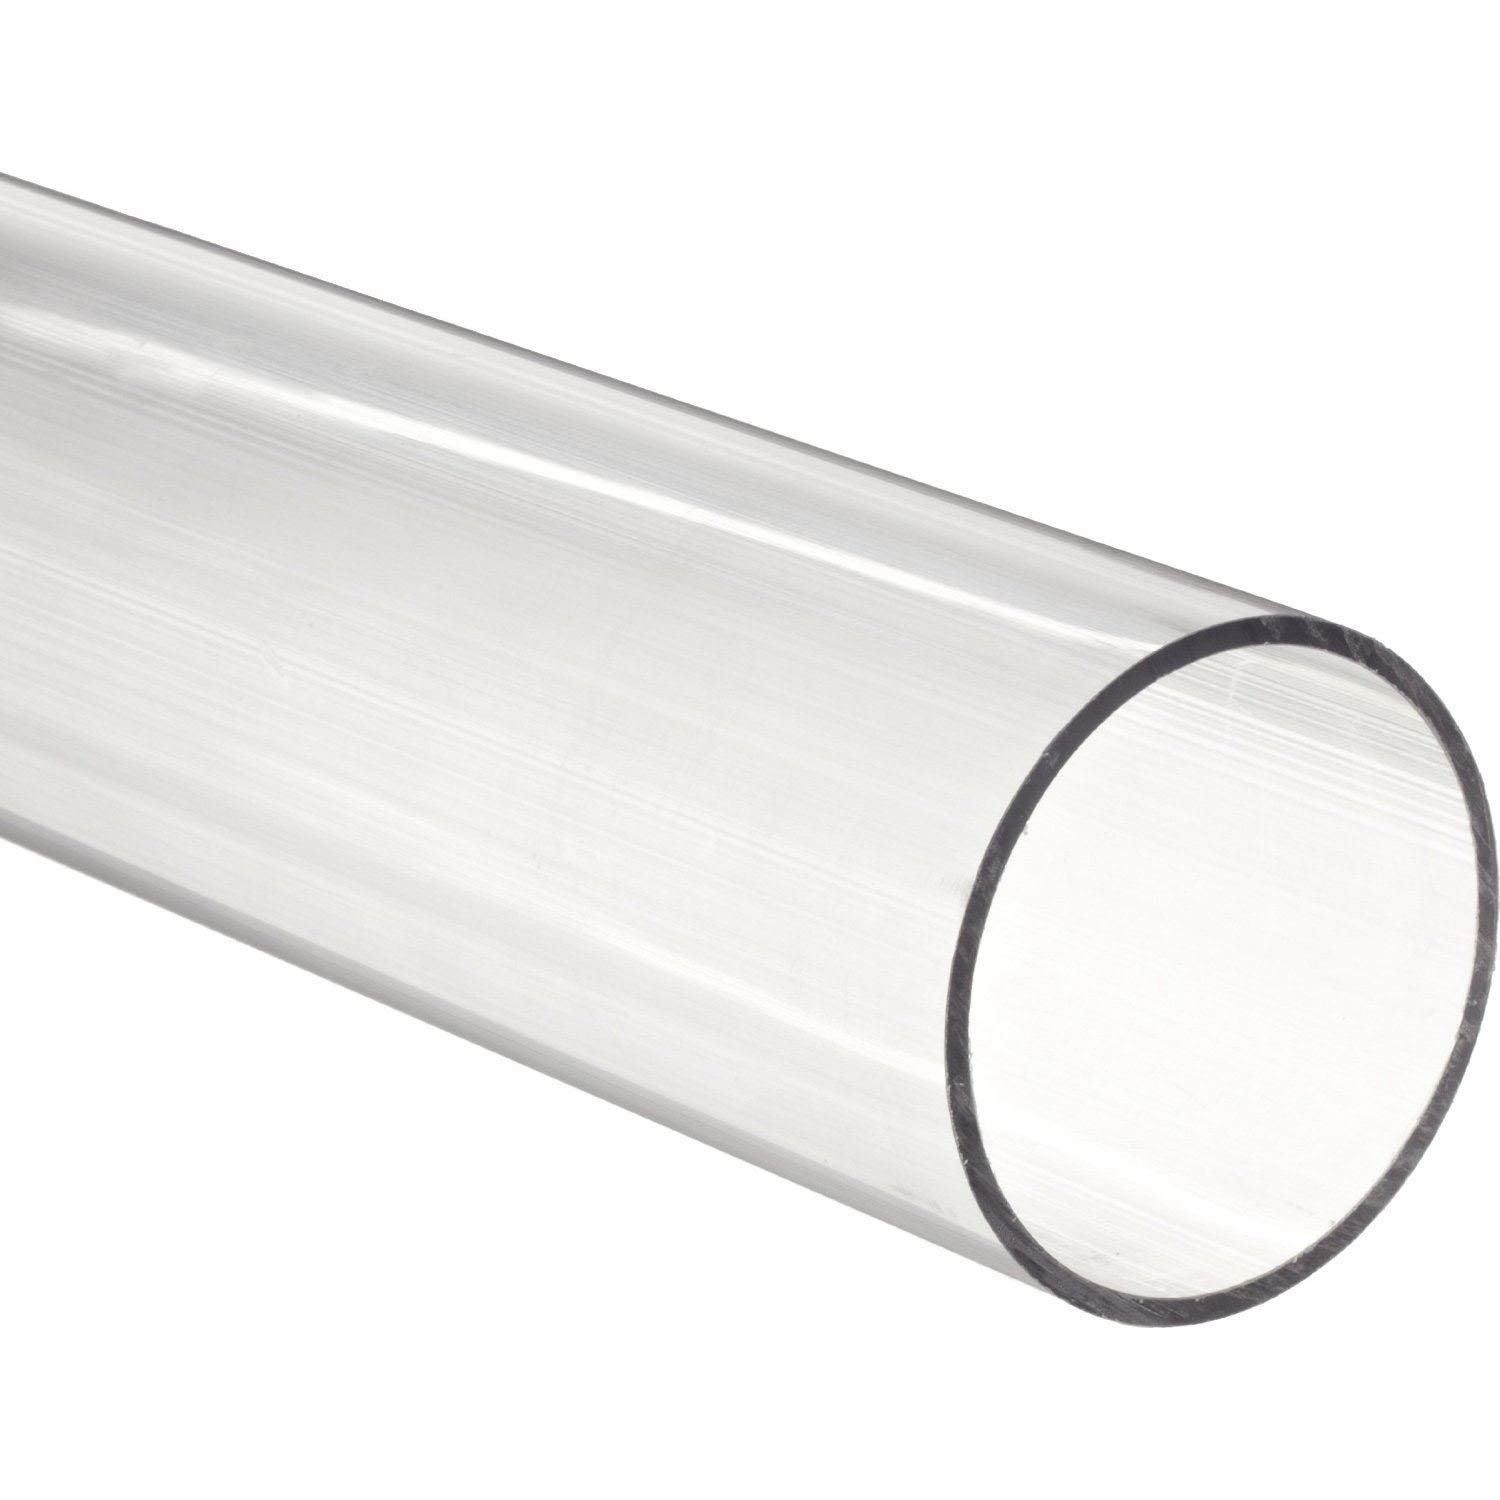 72'' Long Acrylic Round Tube (Clear) - 3/4'' ID x 1'' OD x 1/8'' Wall (Pack of 2) by Plastic-Craft